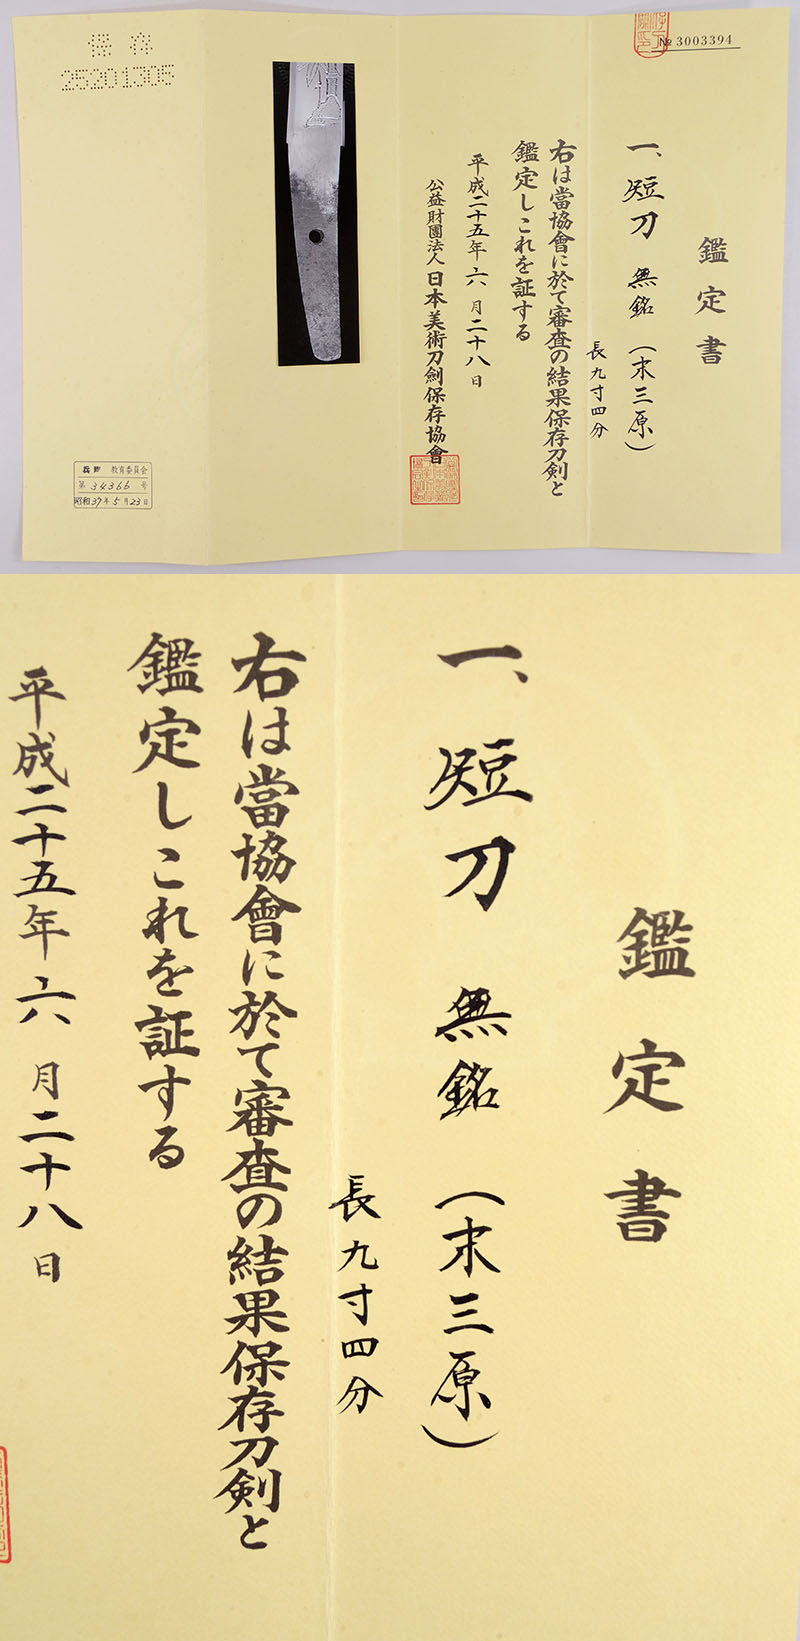 無銘(末三原) Picture of Certificate